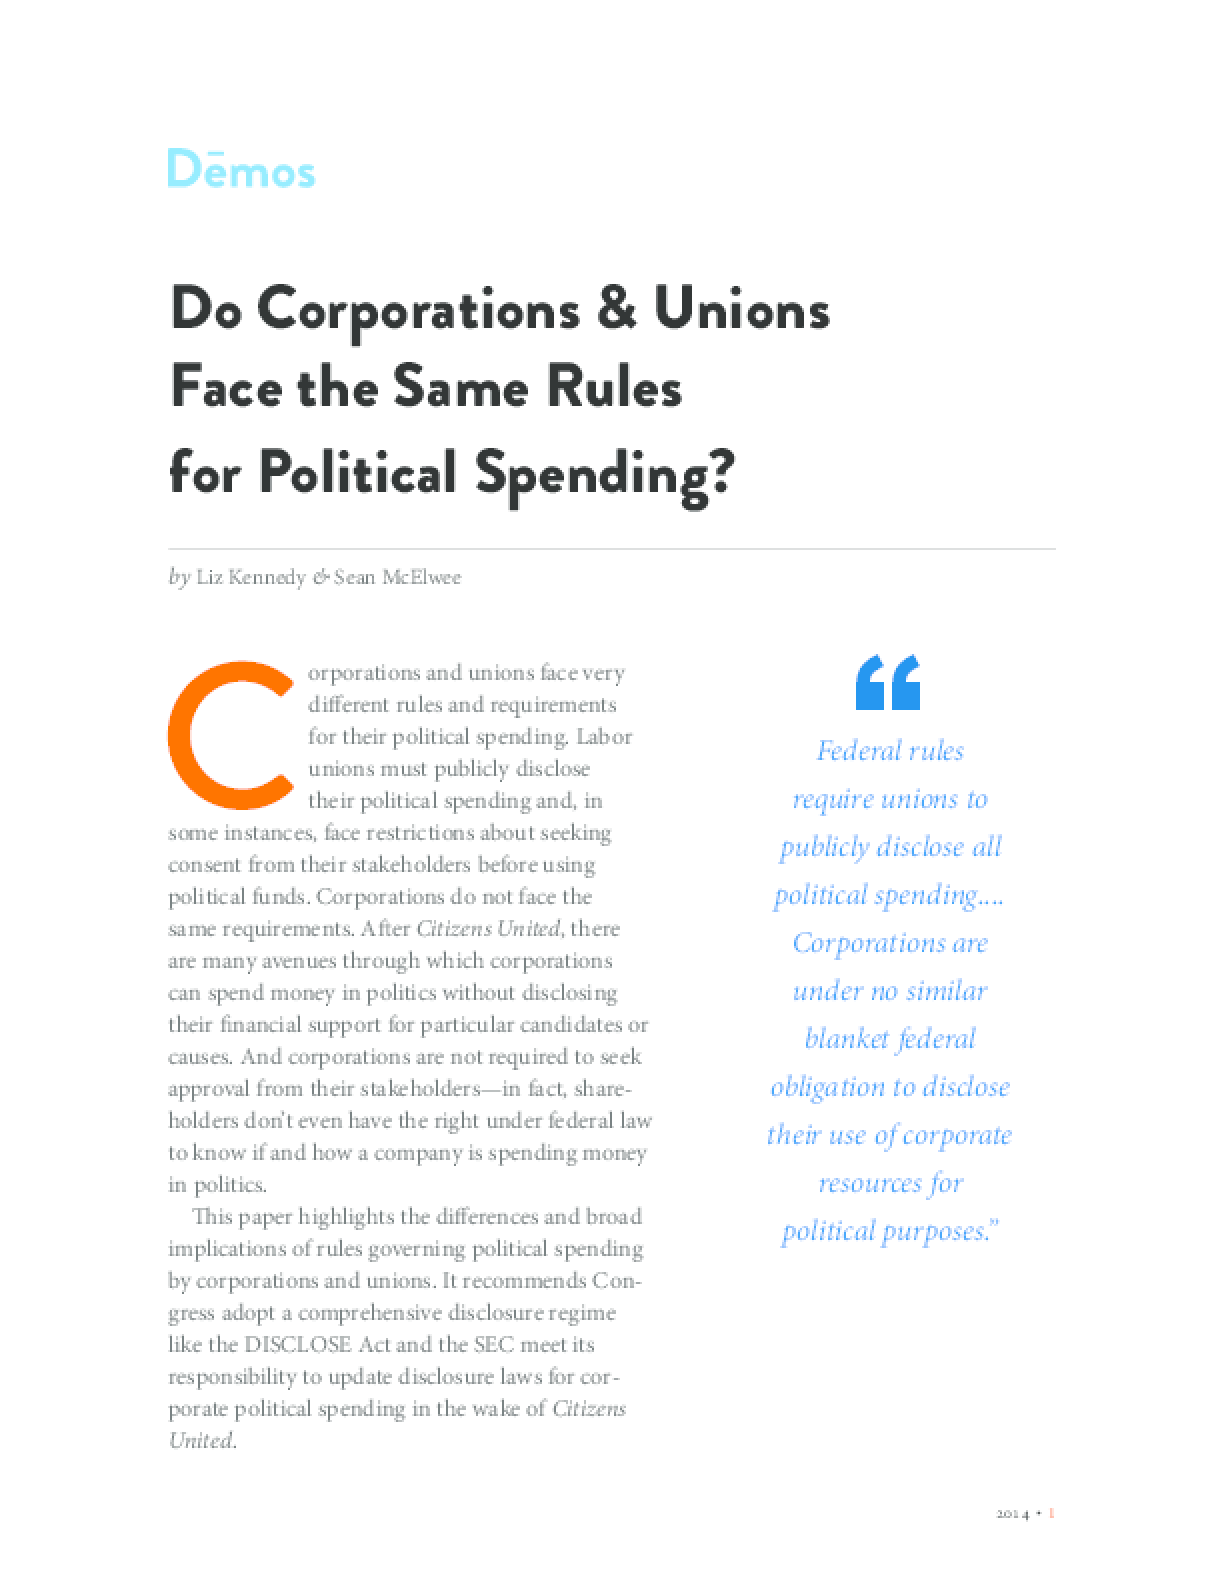 Do Corporations & Unions Face the Same Rules for Political Spending?